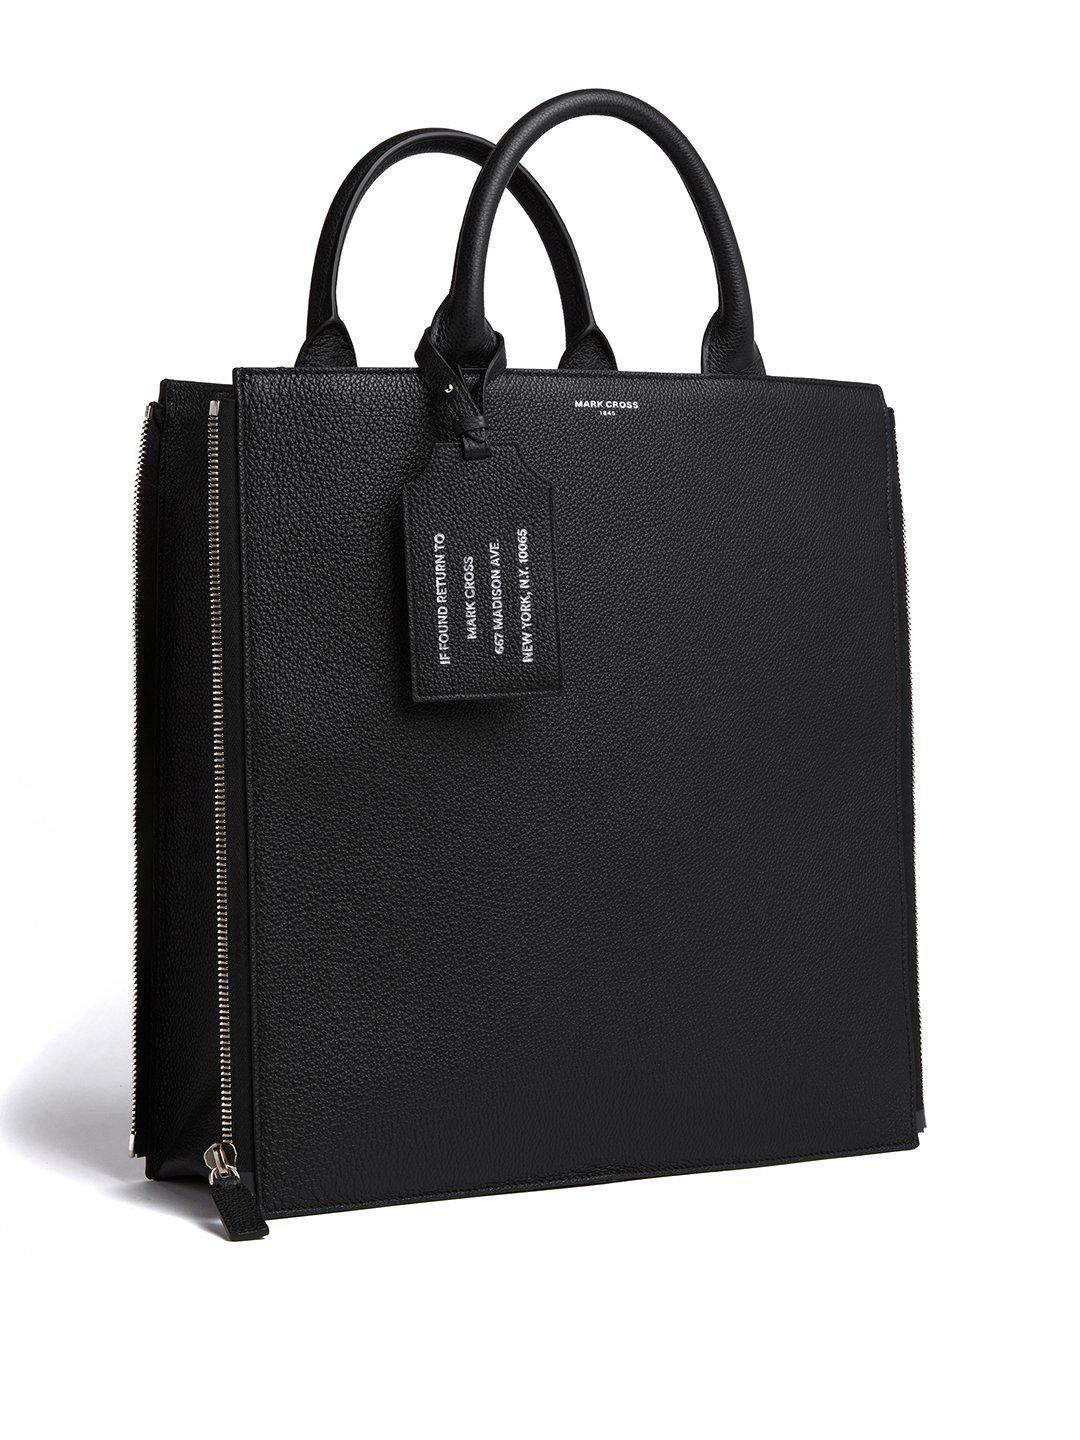 Sidney Leather Tote Bag 5